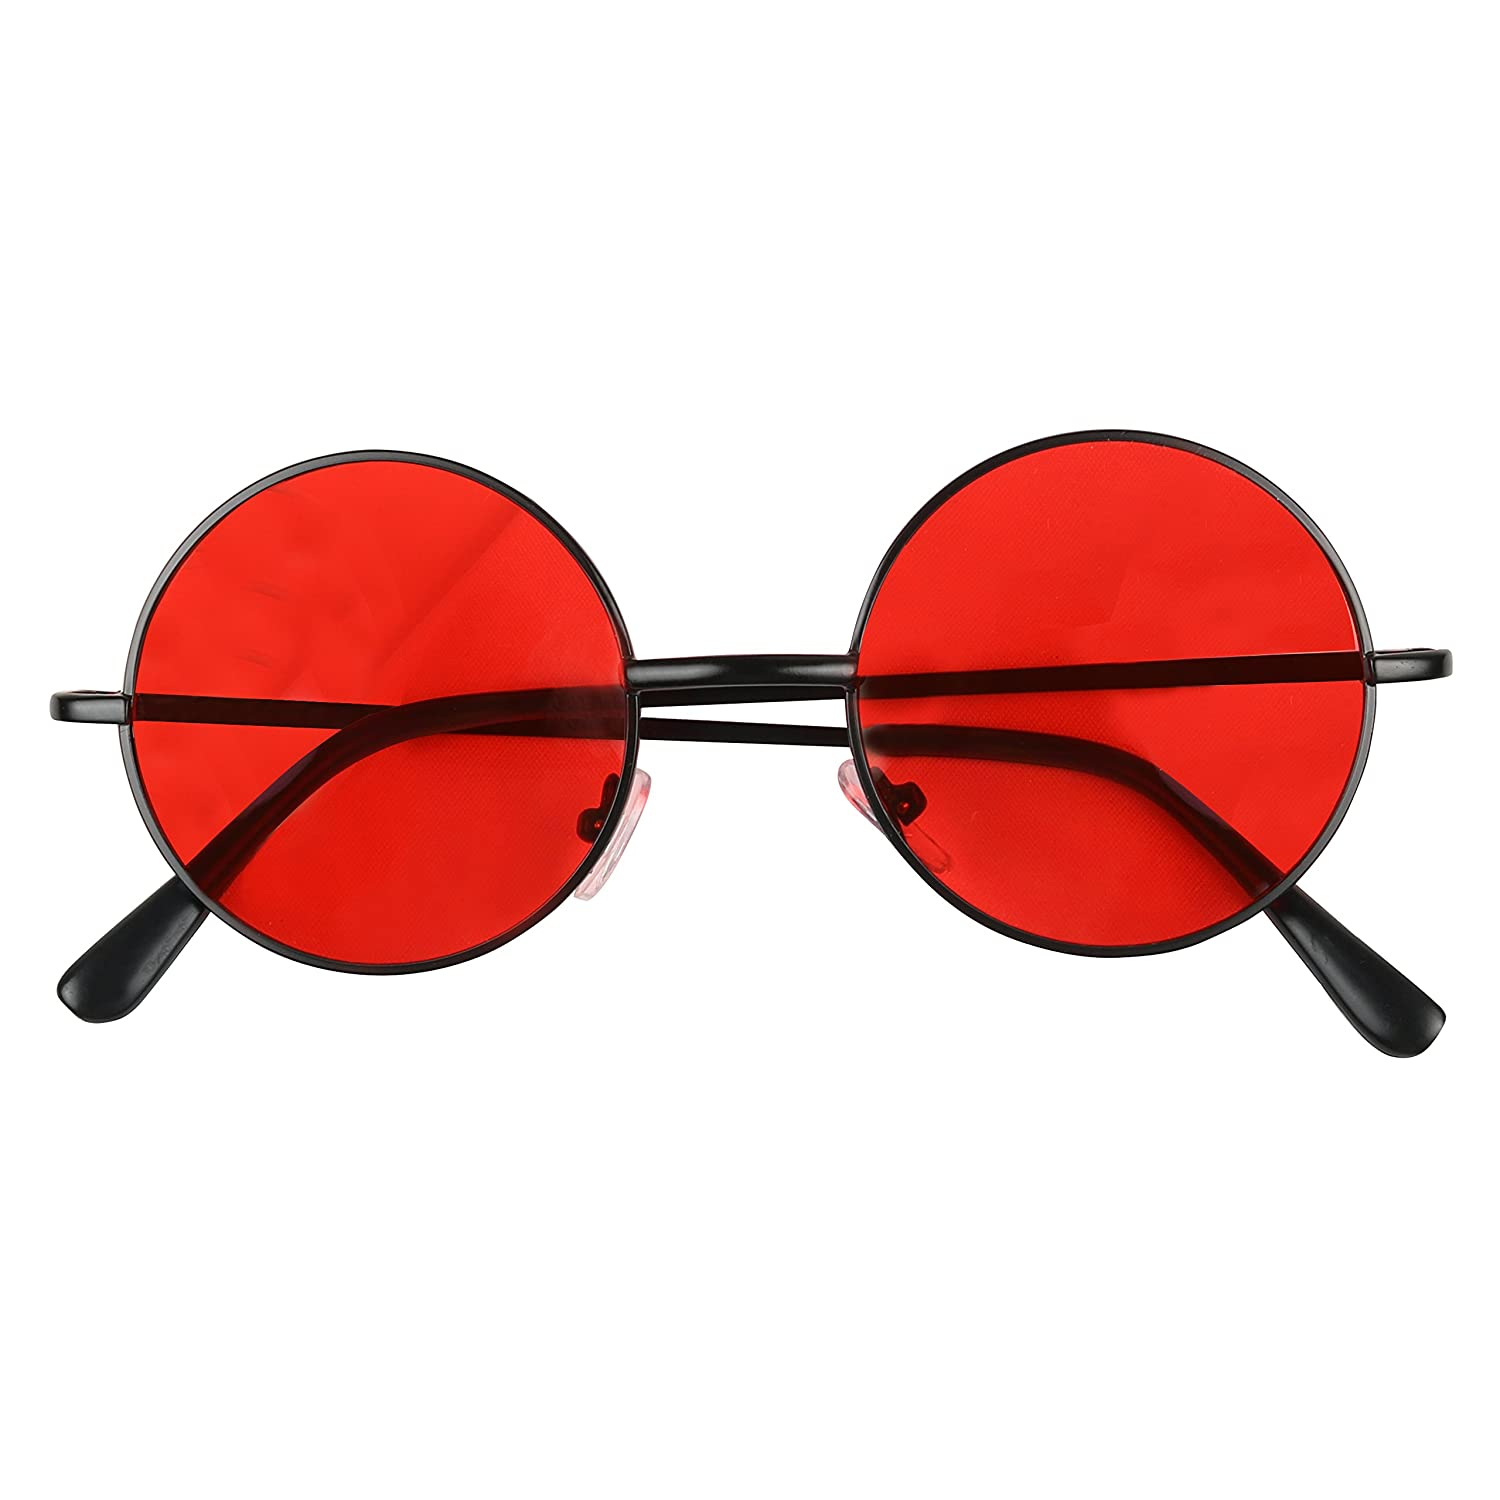 a215b6809d Shadyveu retro colorful tint lennon style round groovy hippie wire  sunglasses black frame red lens clothing